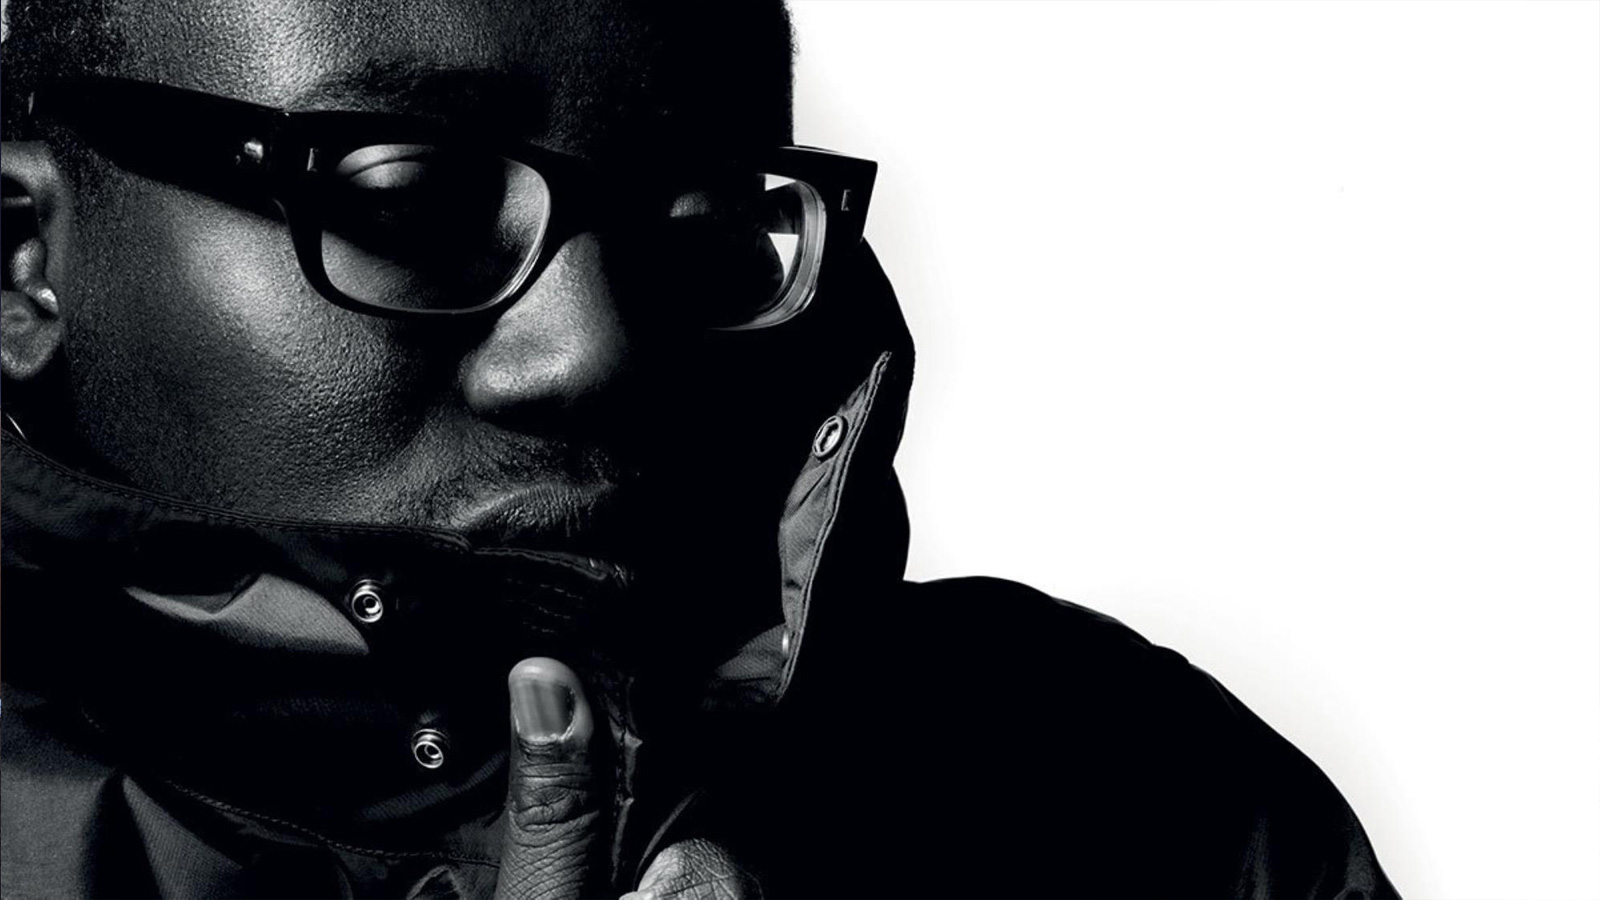 Edward Enninful, fashion and style director of W magazine